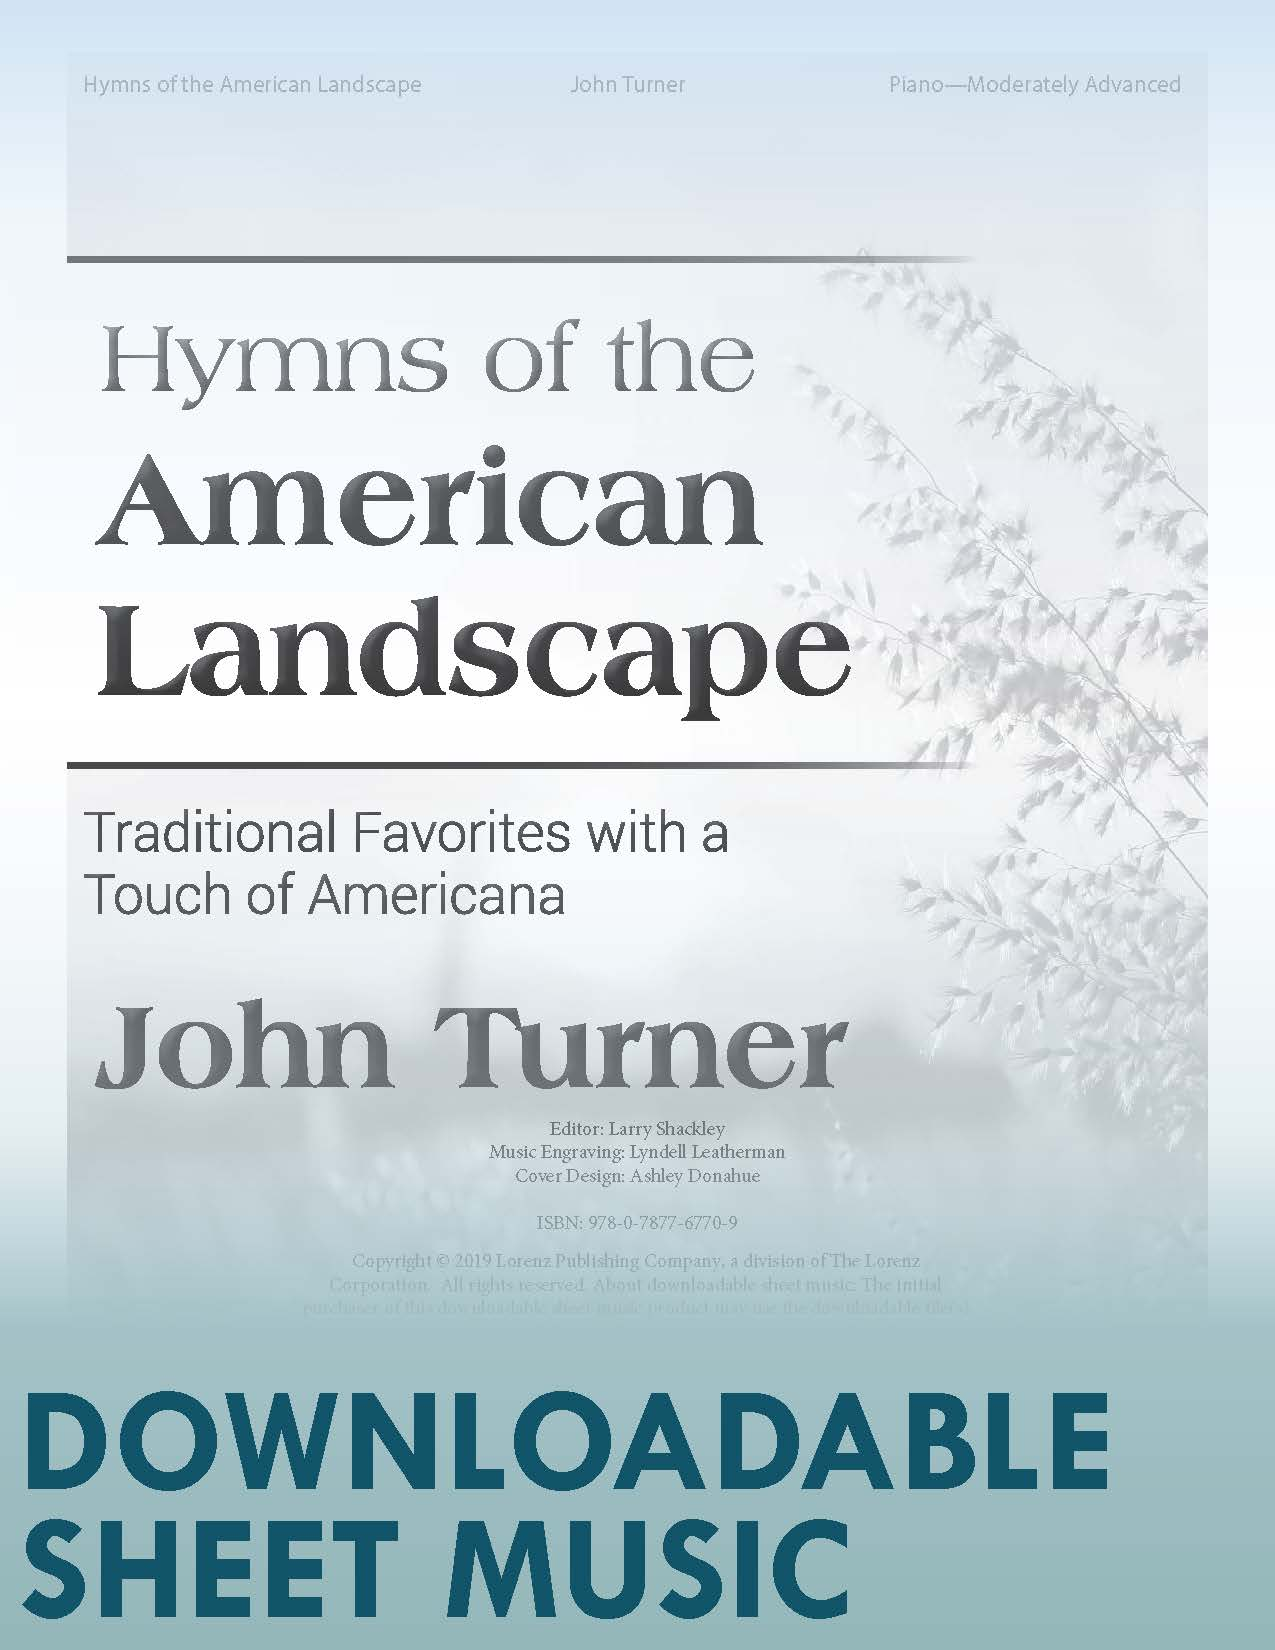 Hymns of the American Landscape - Digital Download